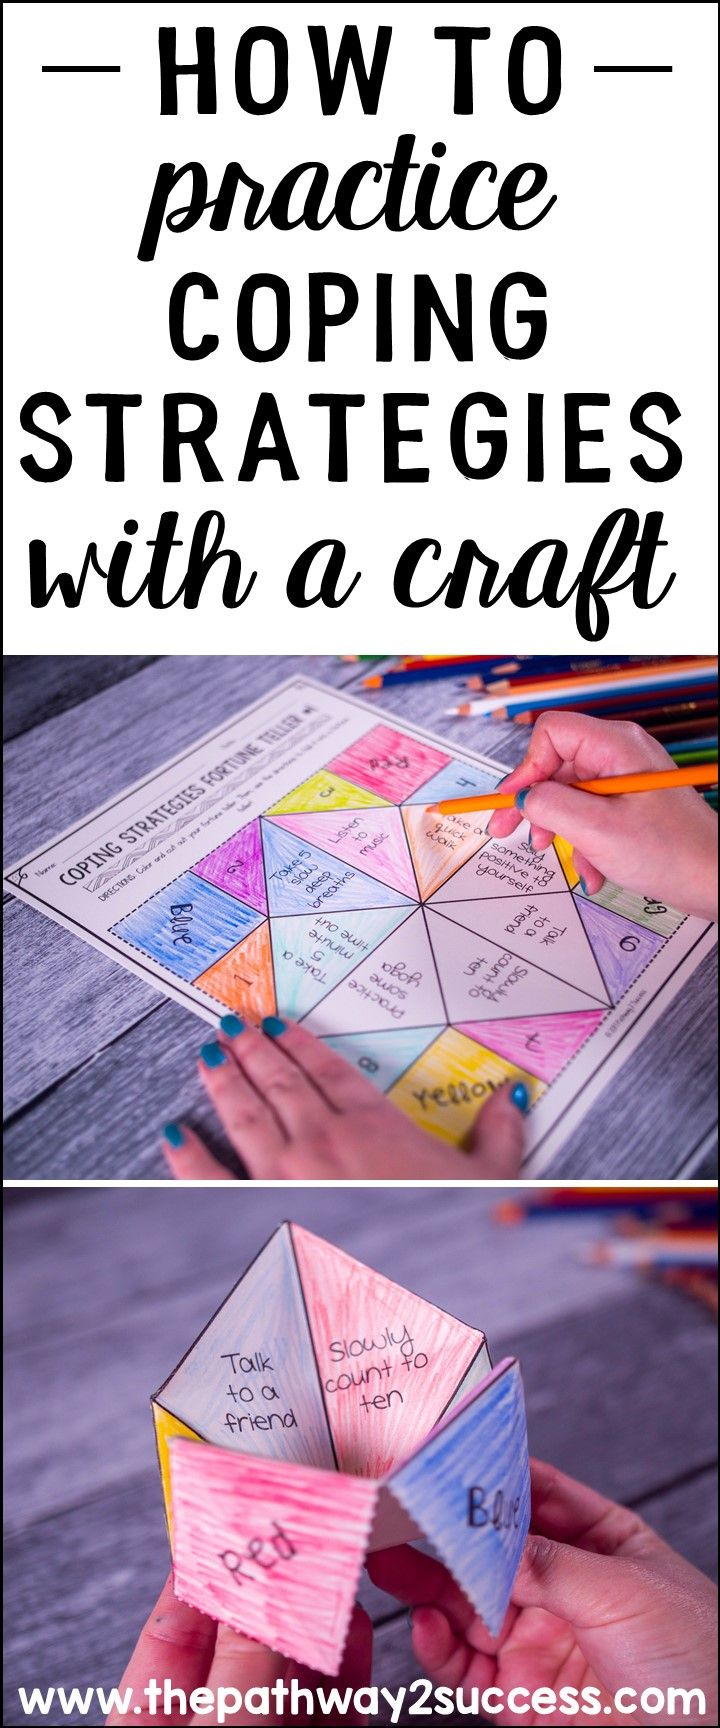 Coping strategies help kids and young adults manage their strongest emotions in positive ways. Kids can learn to listen to music, take a walk, color, and much more. Use this guide to show you how to practice coping strategies with a fun craft. #pathway2success #copingstrategies #specialeducation